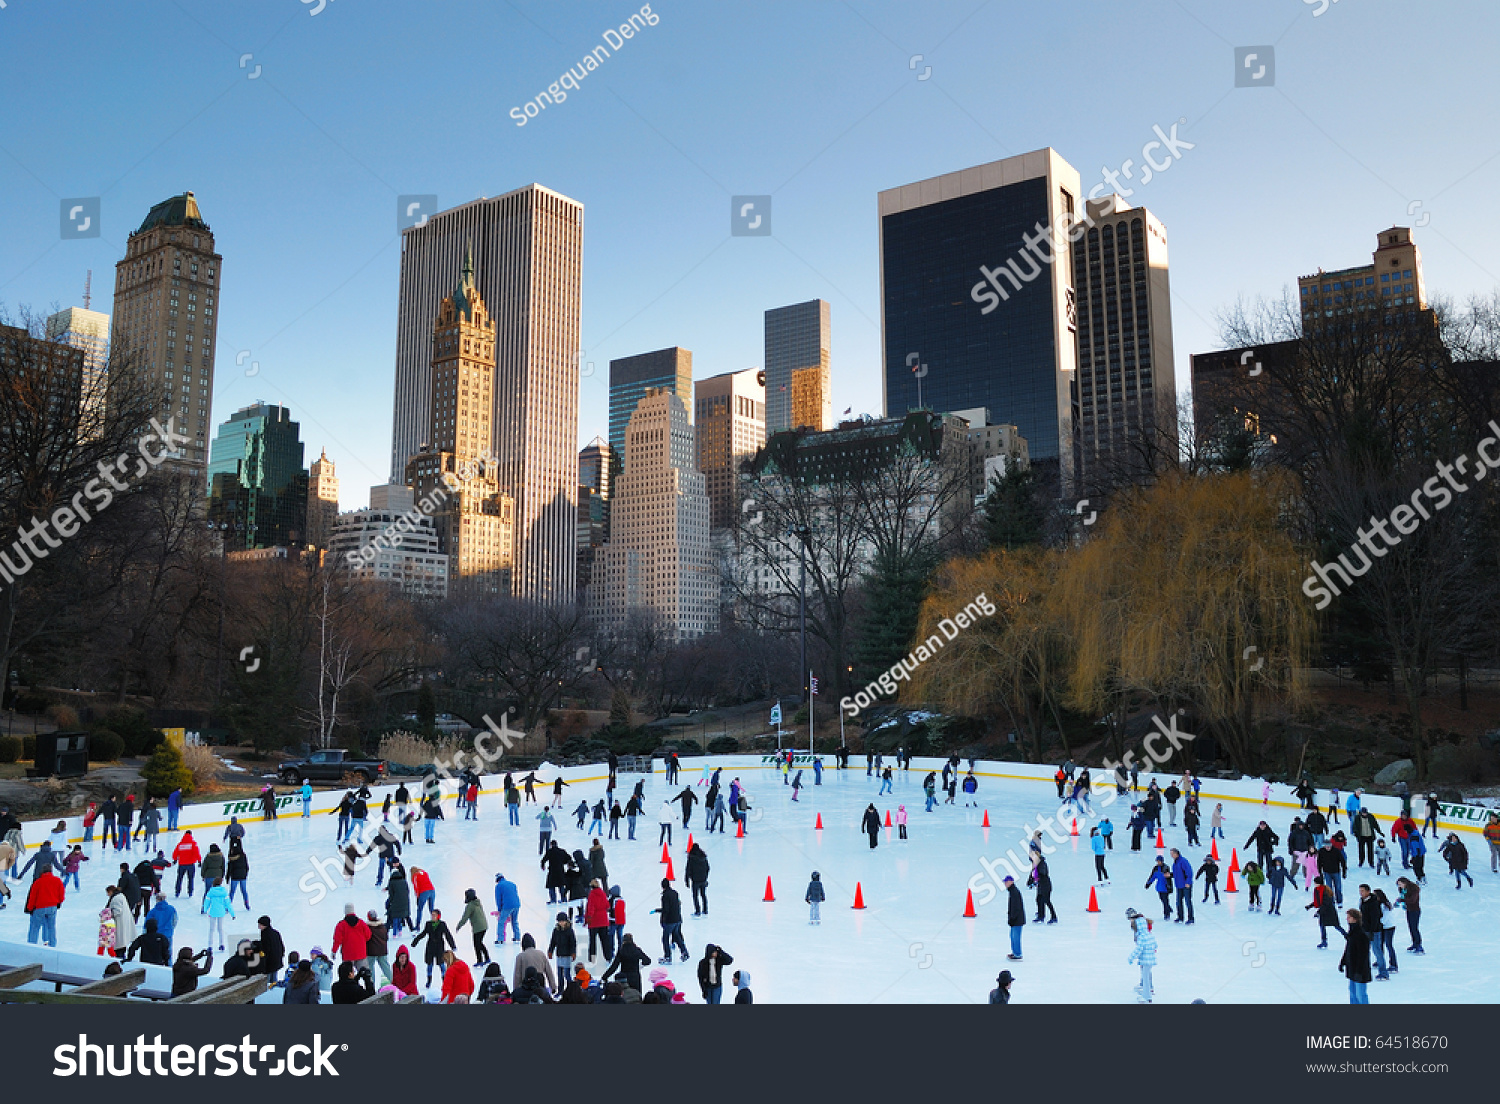 ice skating people with white christmas in central park on december 11 2013 in manhattan new york city usa ez canvas